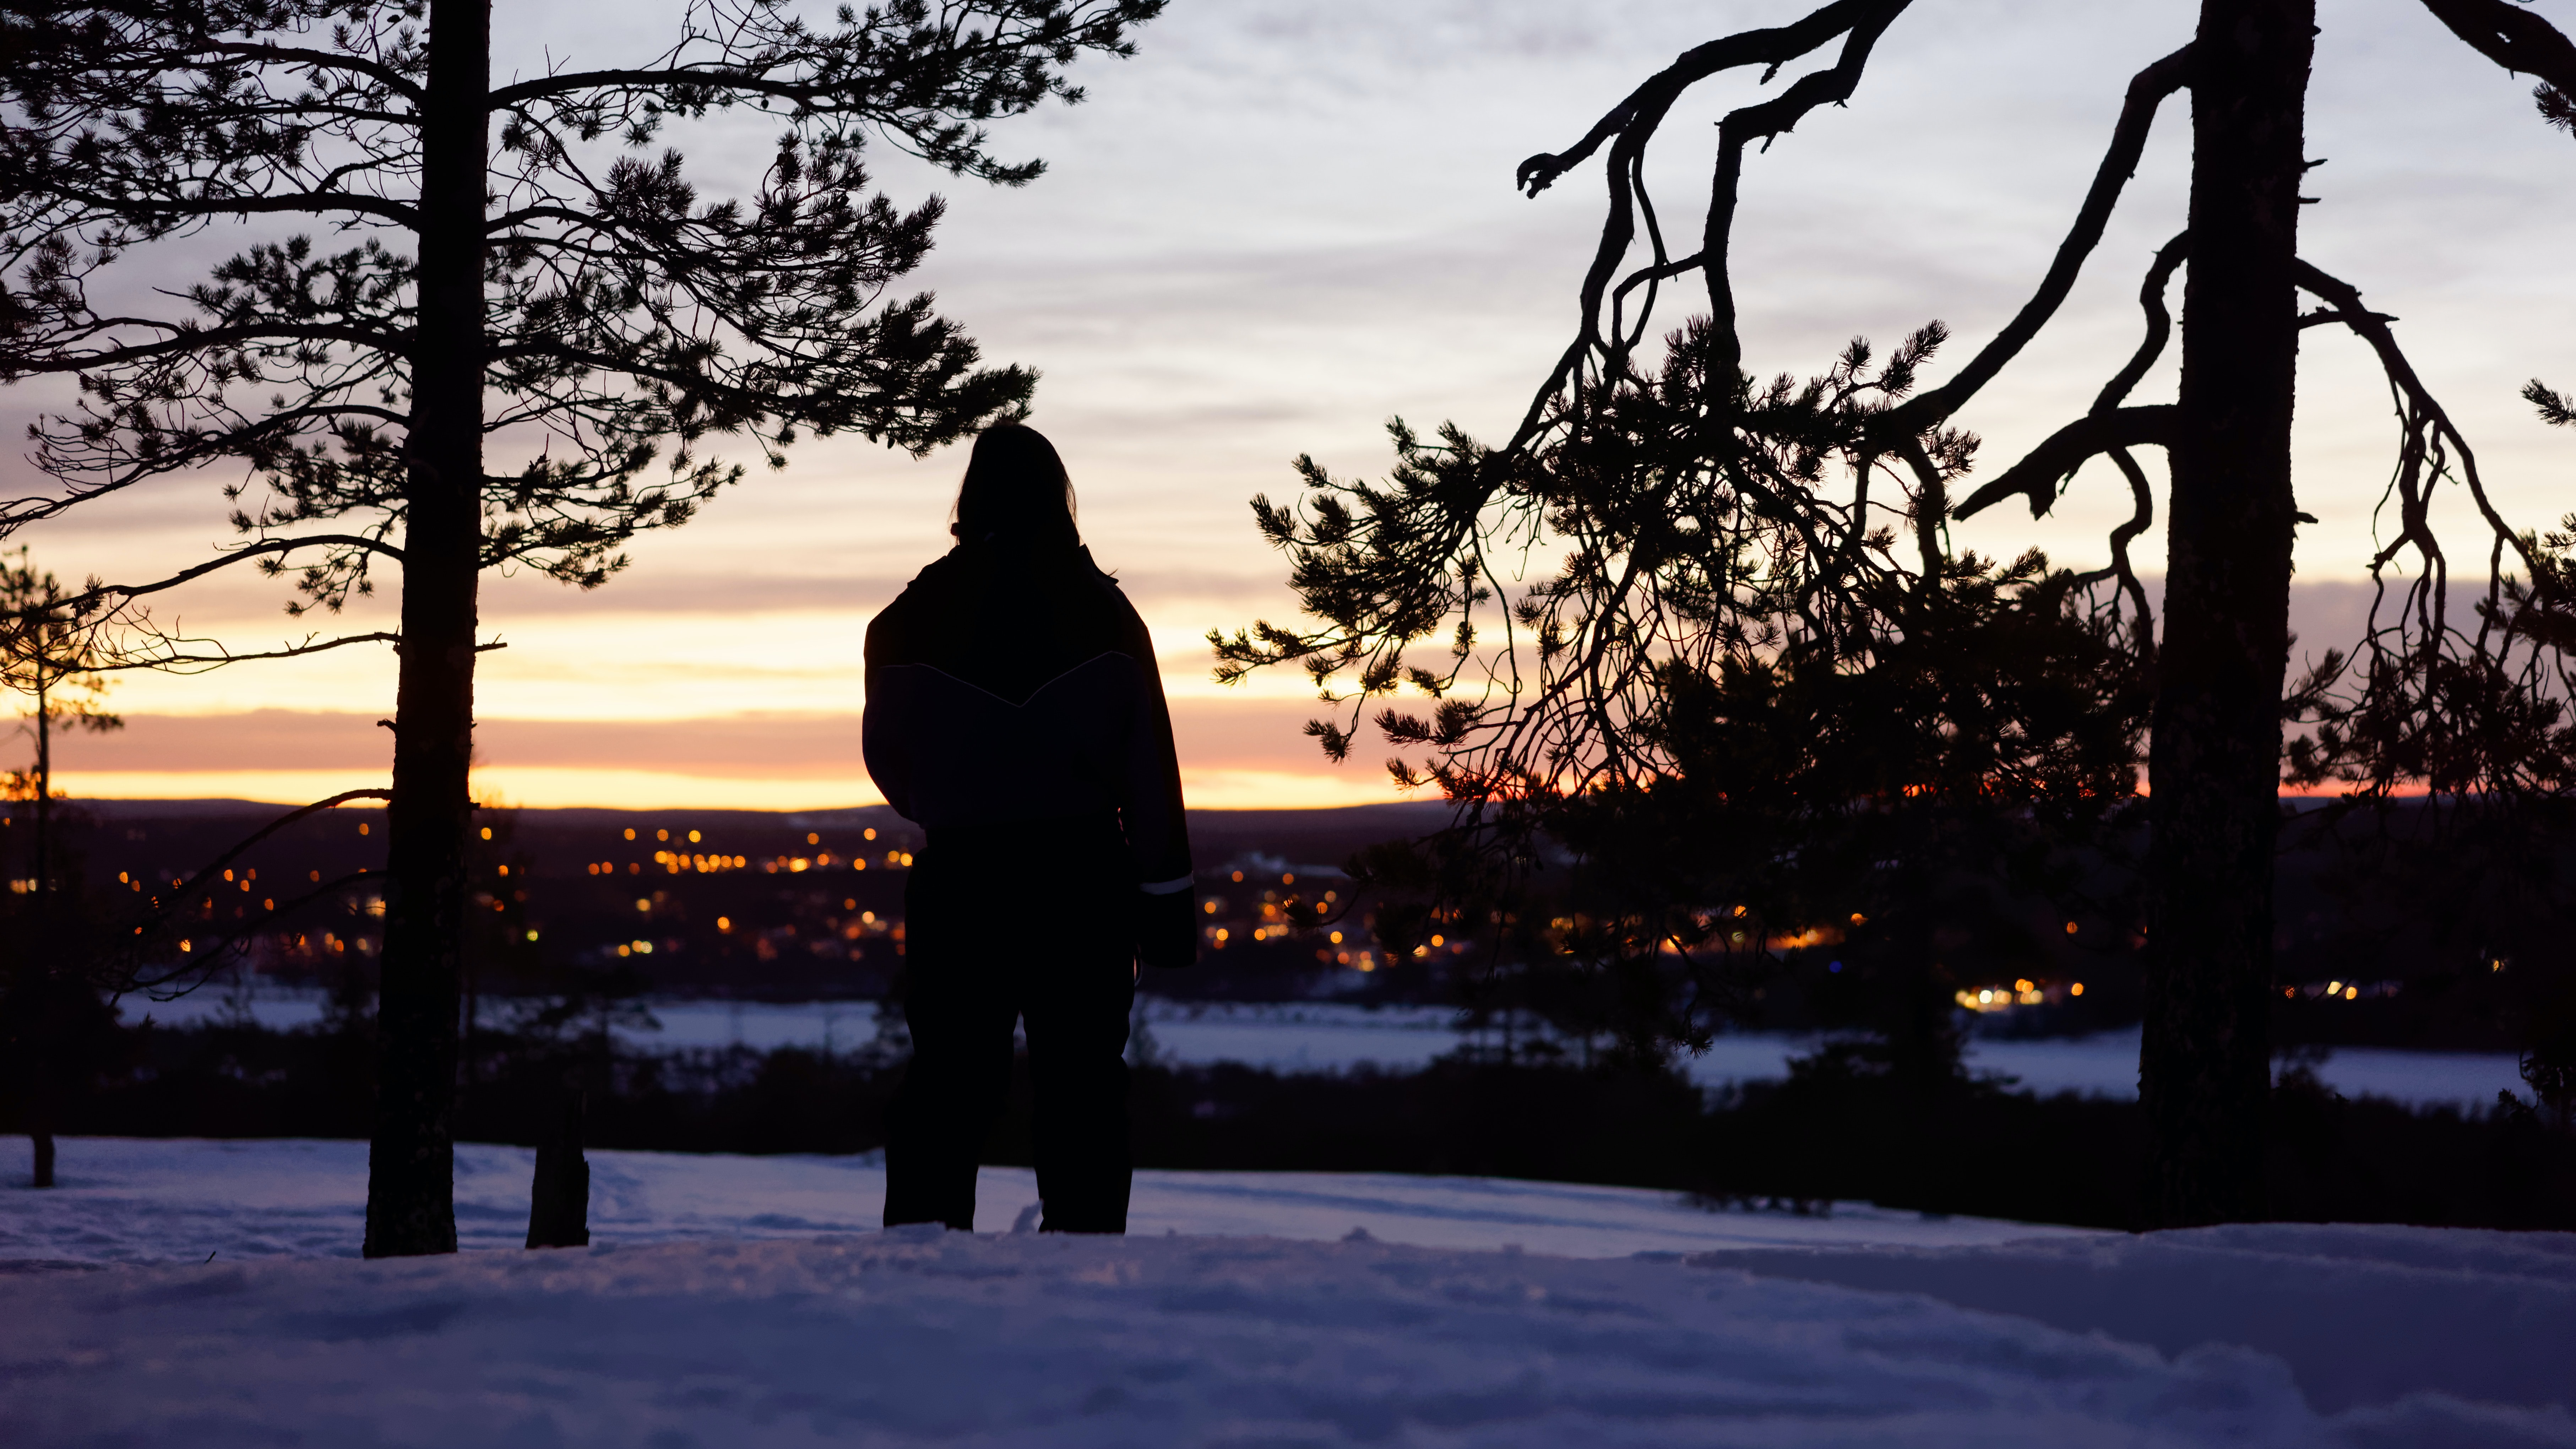 A person stands silhouetted on a snowy tree-lined road, looking at the lights shining from Riovenni